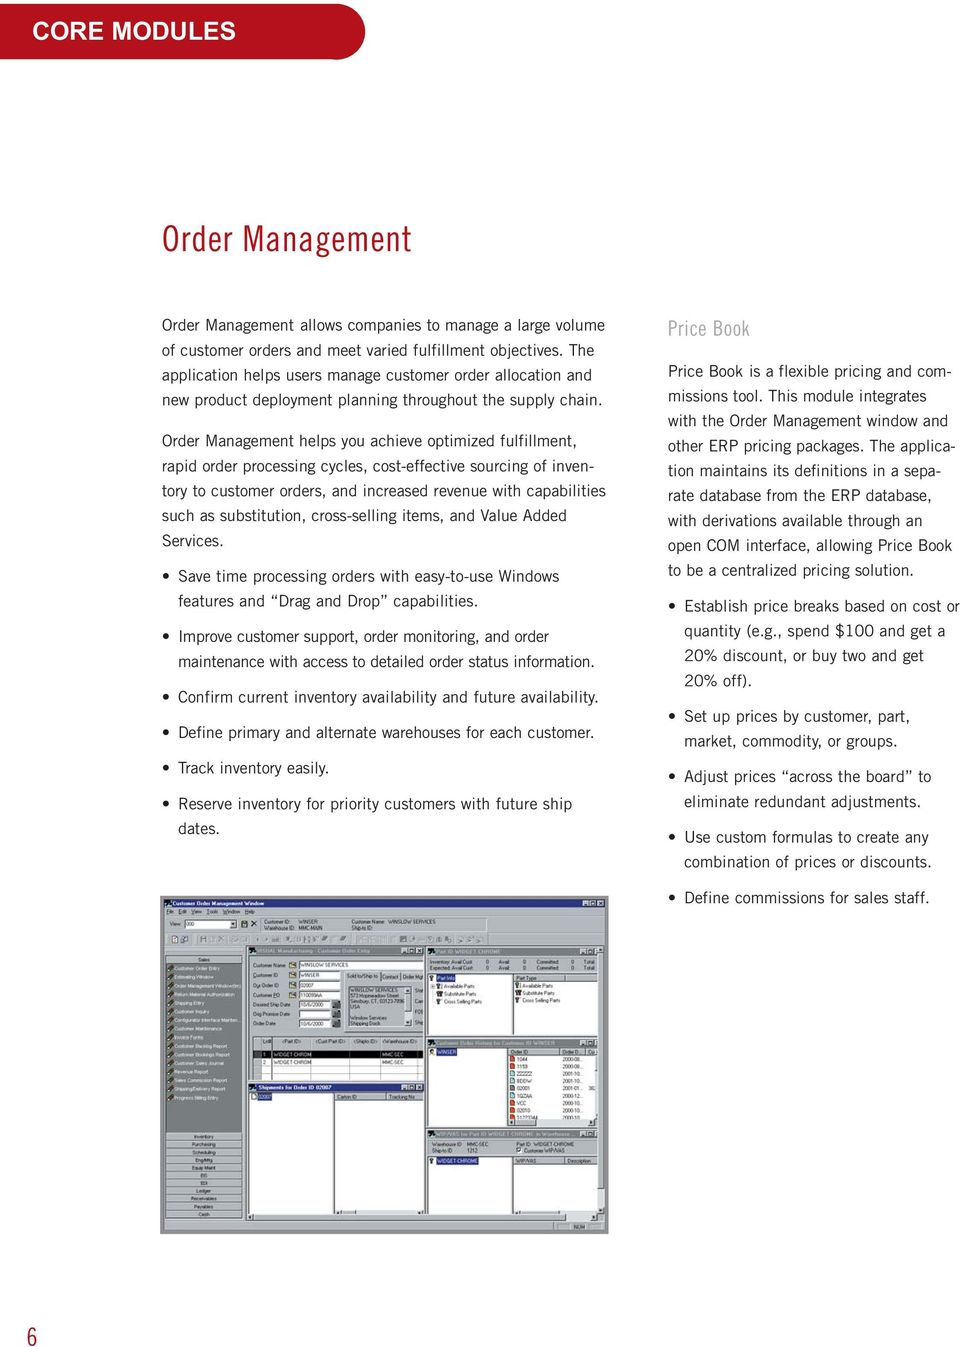 Order Management helps you achieve optimized fulfillment, rapid order processing cycles, cost-effective sourcing of inventory to customer orders, and increased revenue with capabilities such as